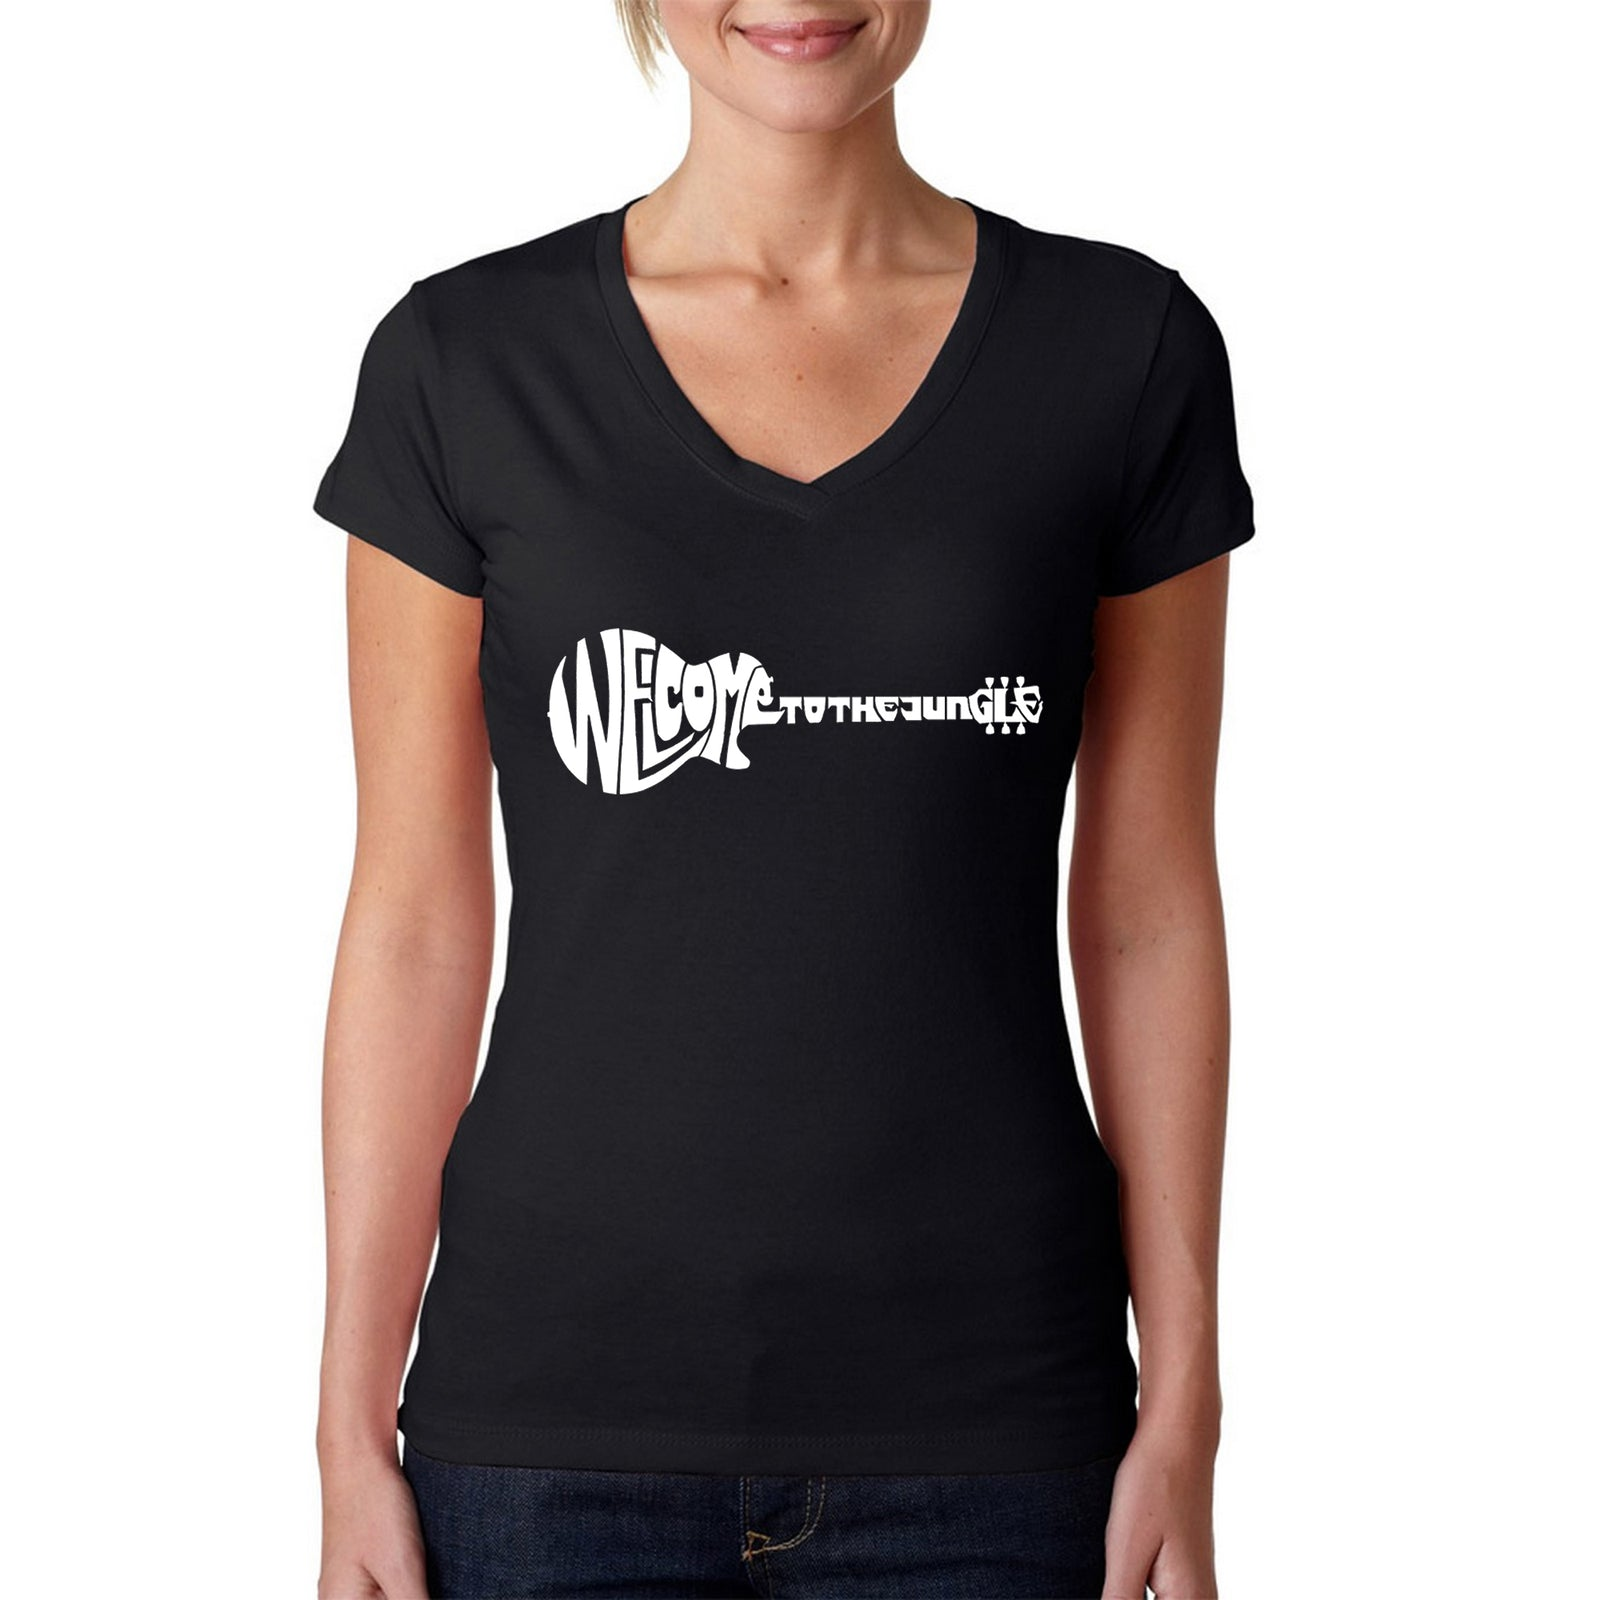 Women's V-Neck T-Shirt - Welcome to the Jungle